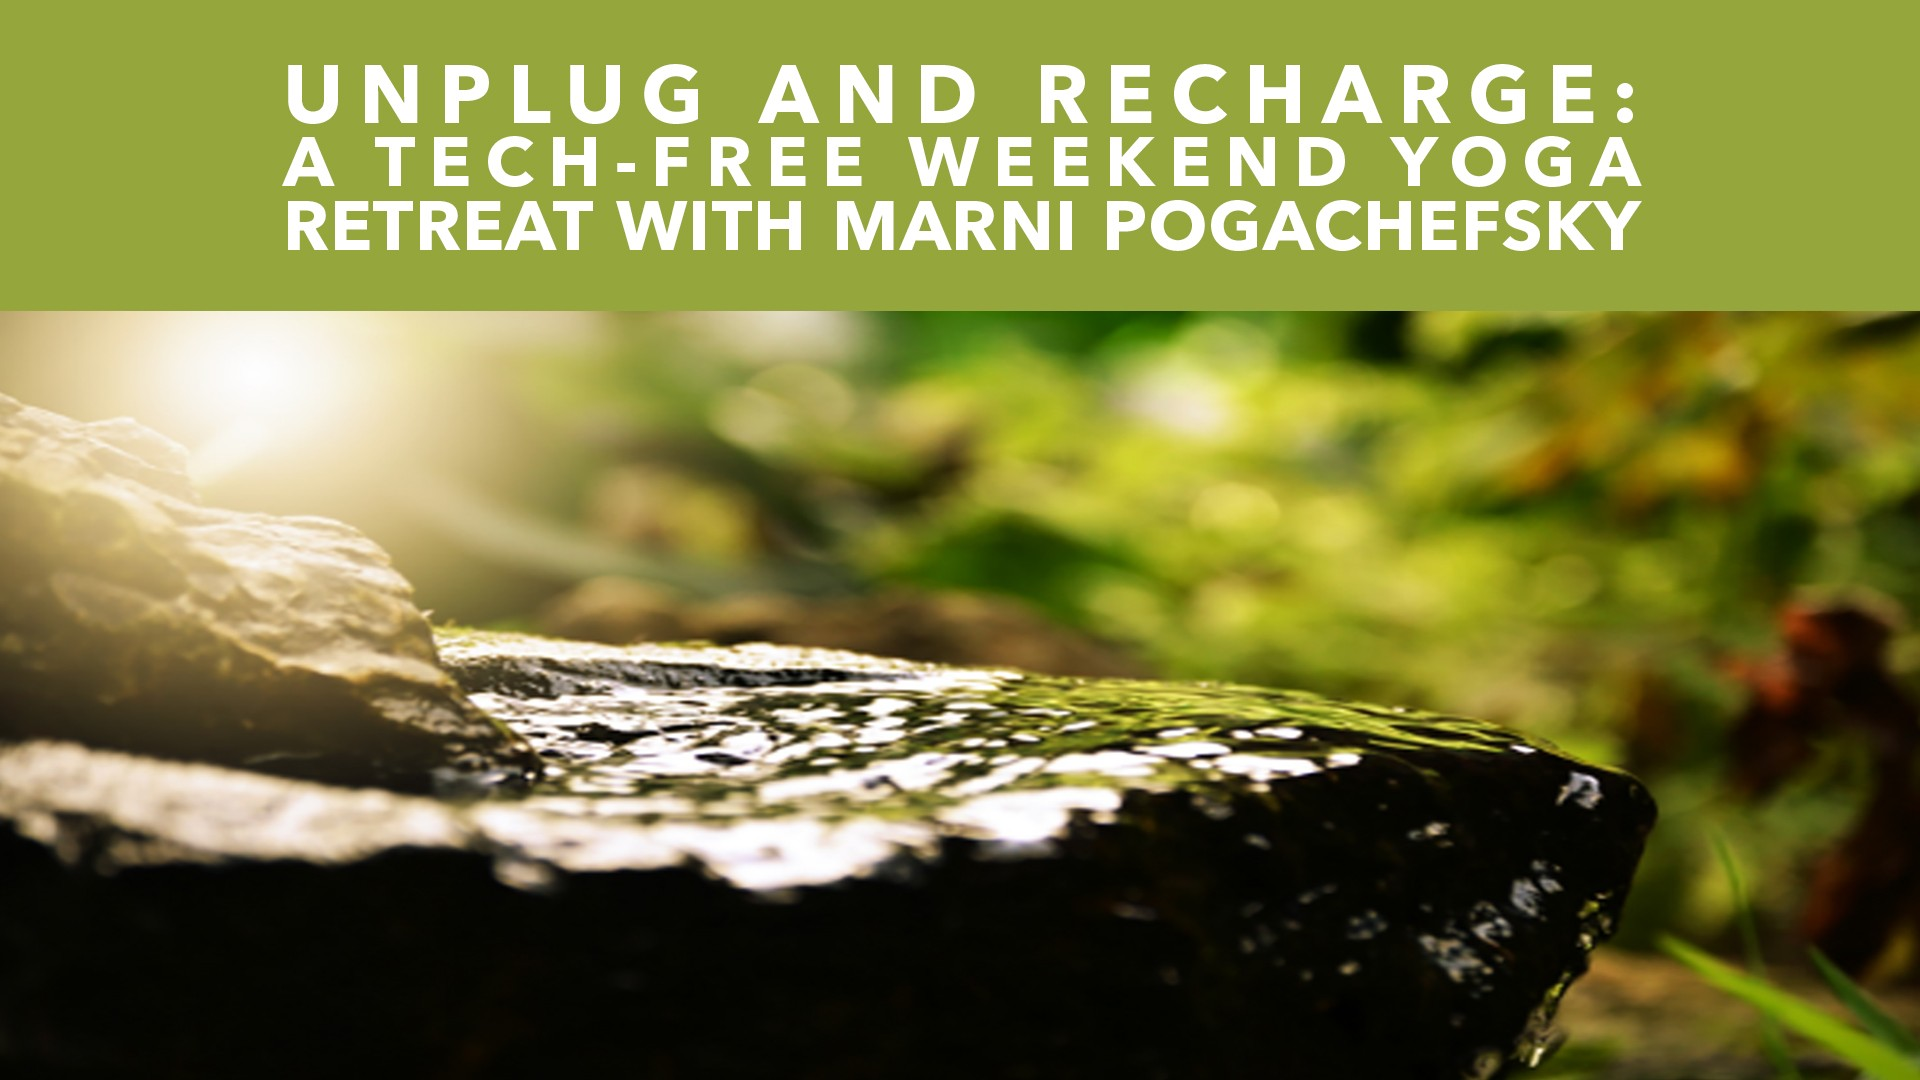 Unplug and Recharge - A Tech-Free Weekend Yoga Retreat with Marni Pogachefsky November 21st - 24th, 2019 at Menla Retreat and Dewa Spa in Phoenicia, New York!